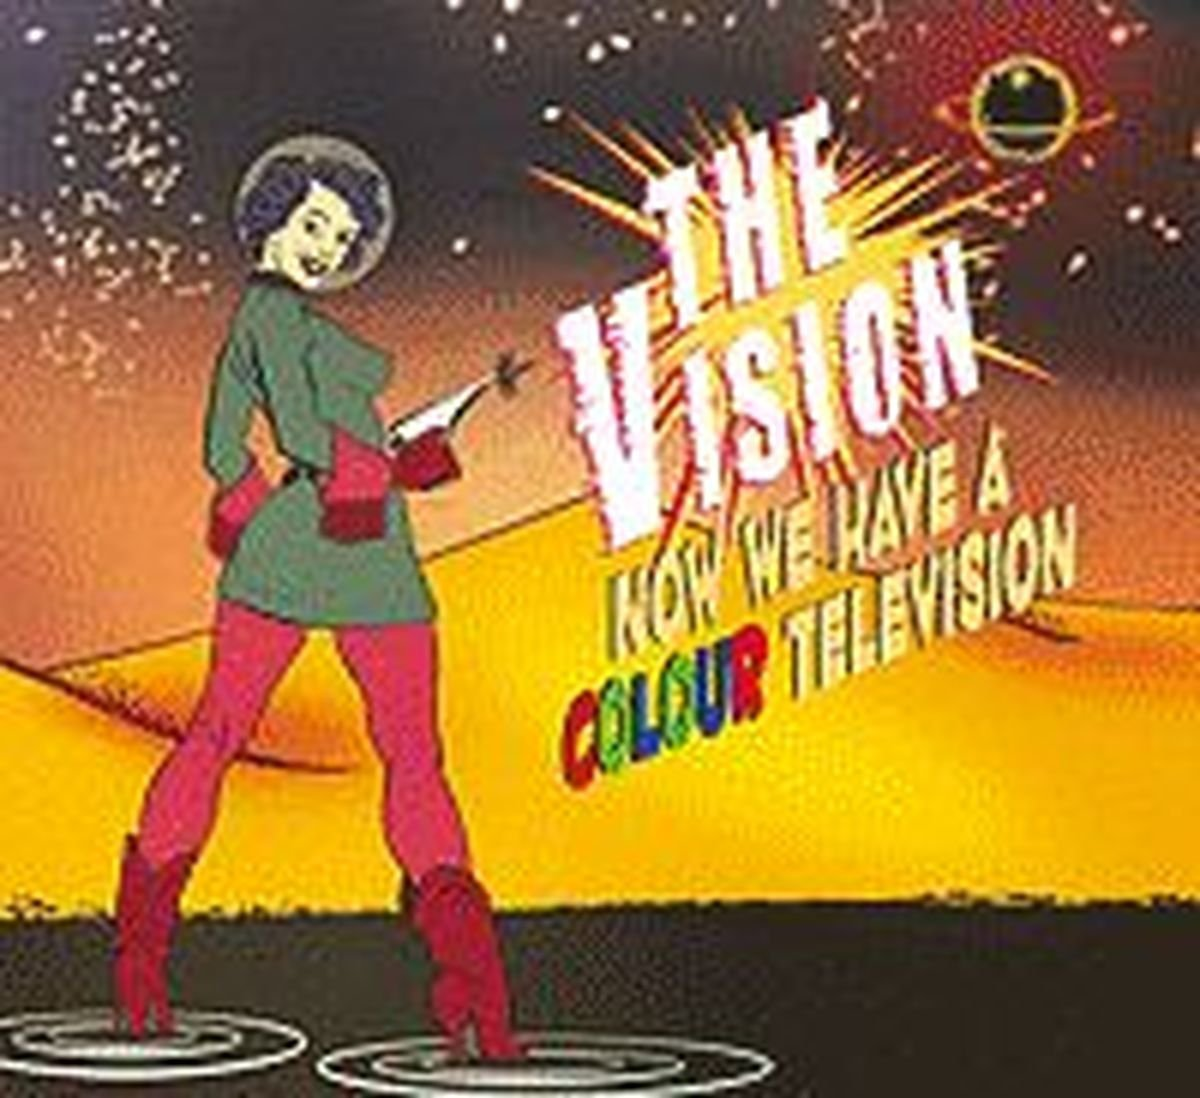 TheVision